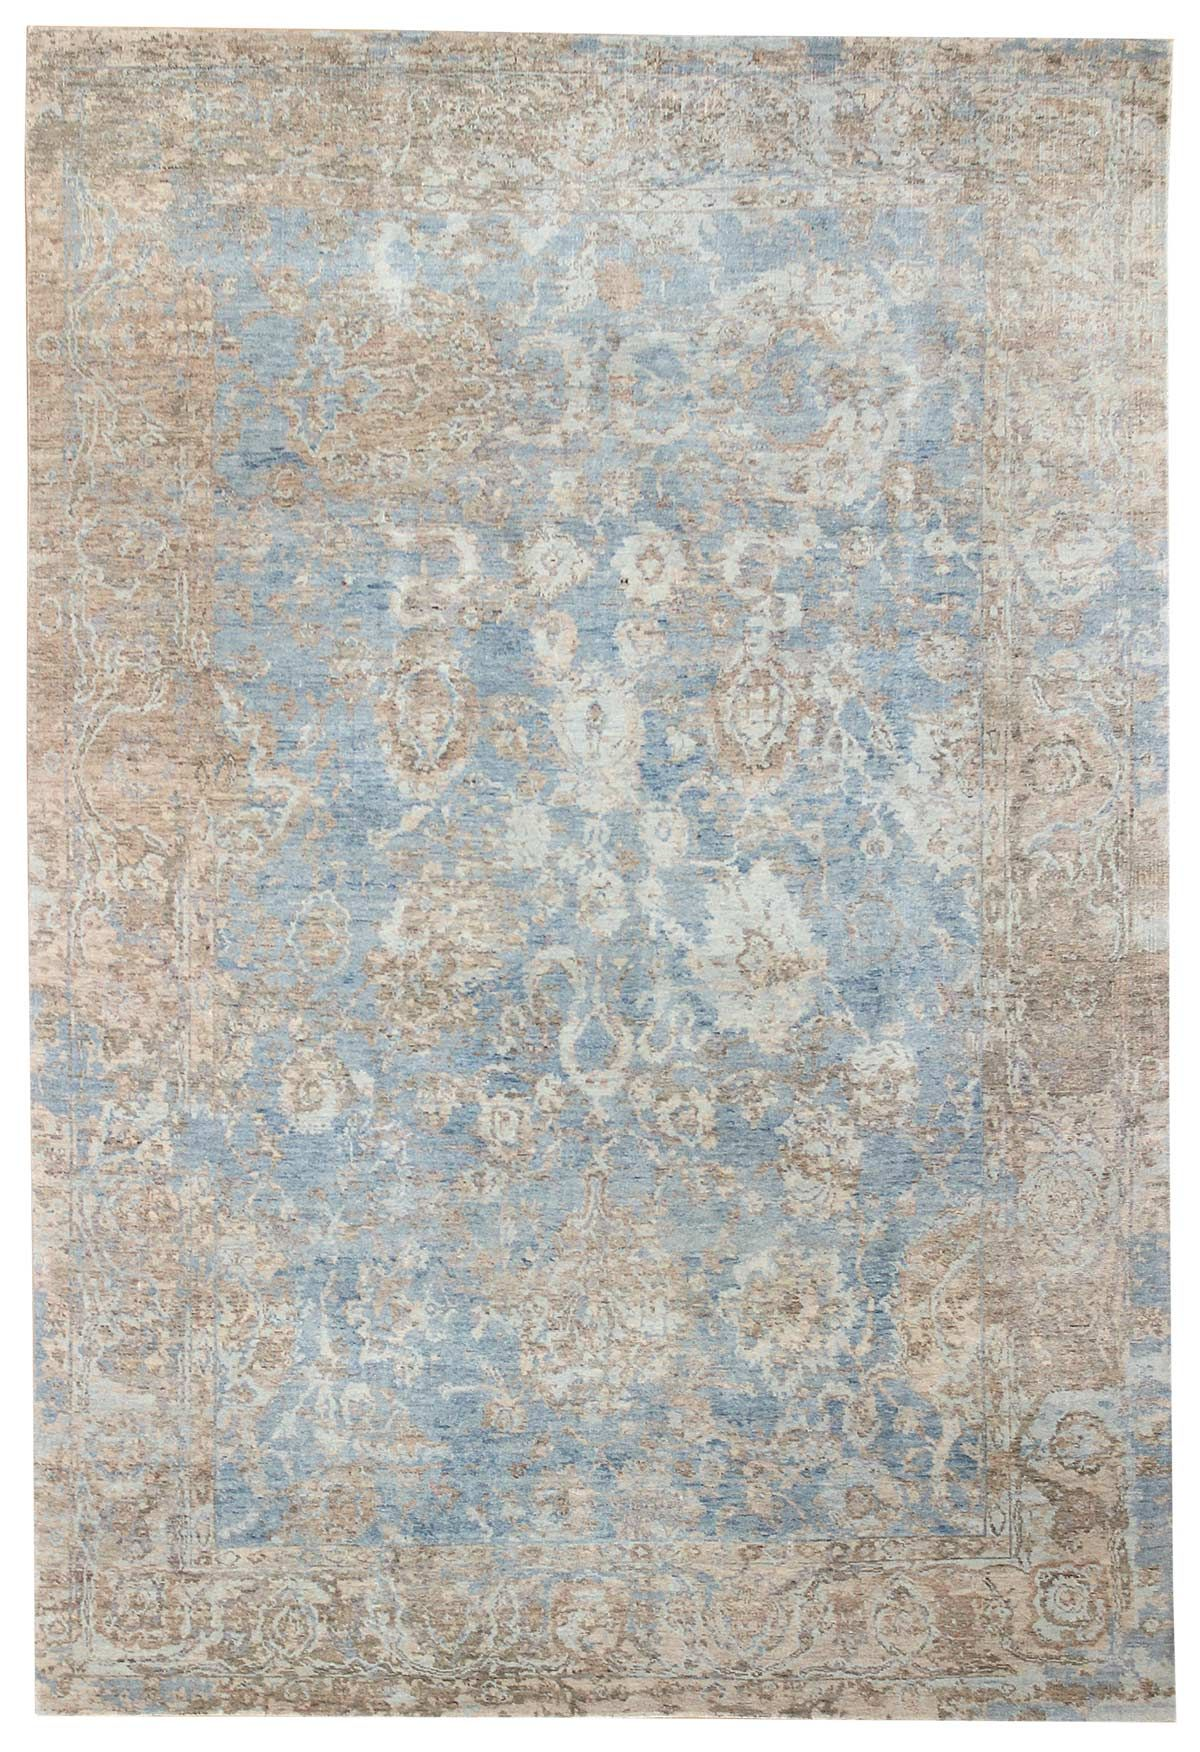 Recent Arrivals Gallery Patinated Look Rug Hand Knotted In India Size 6 Feet 0 Inch Es X 9 Feet 0 Inch Es Rugs Carpet World Modern Rugs